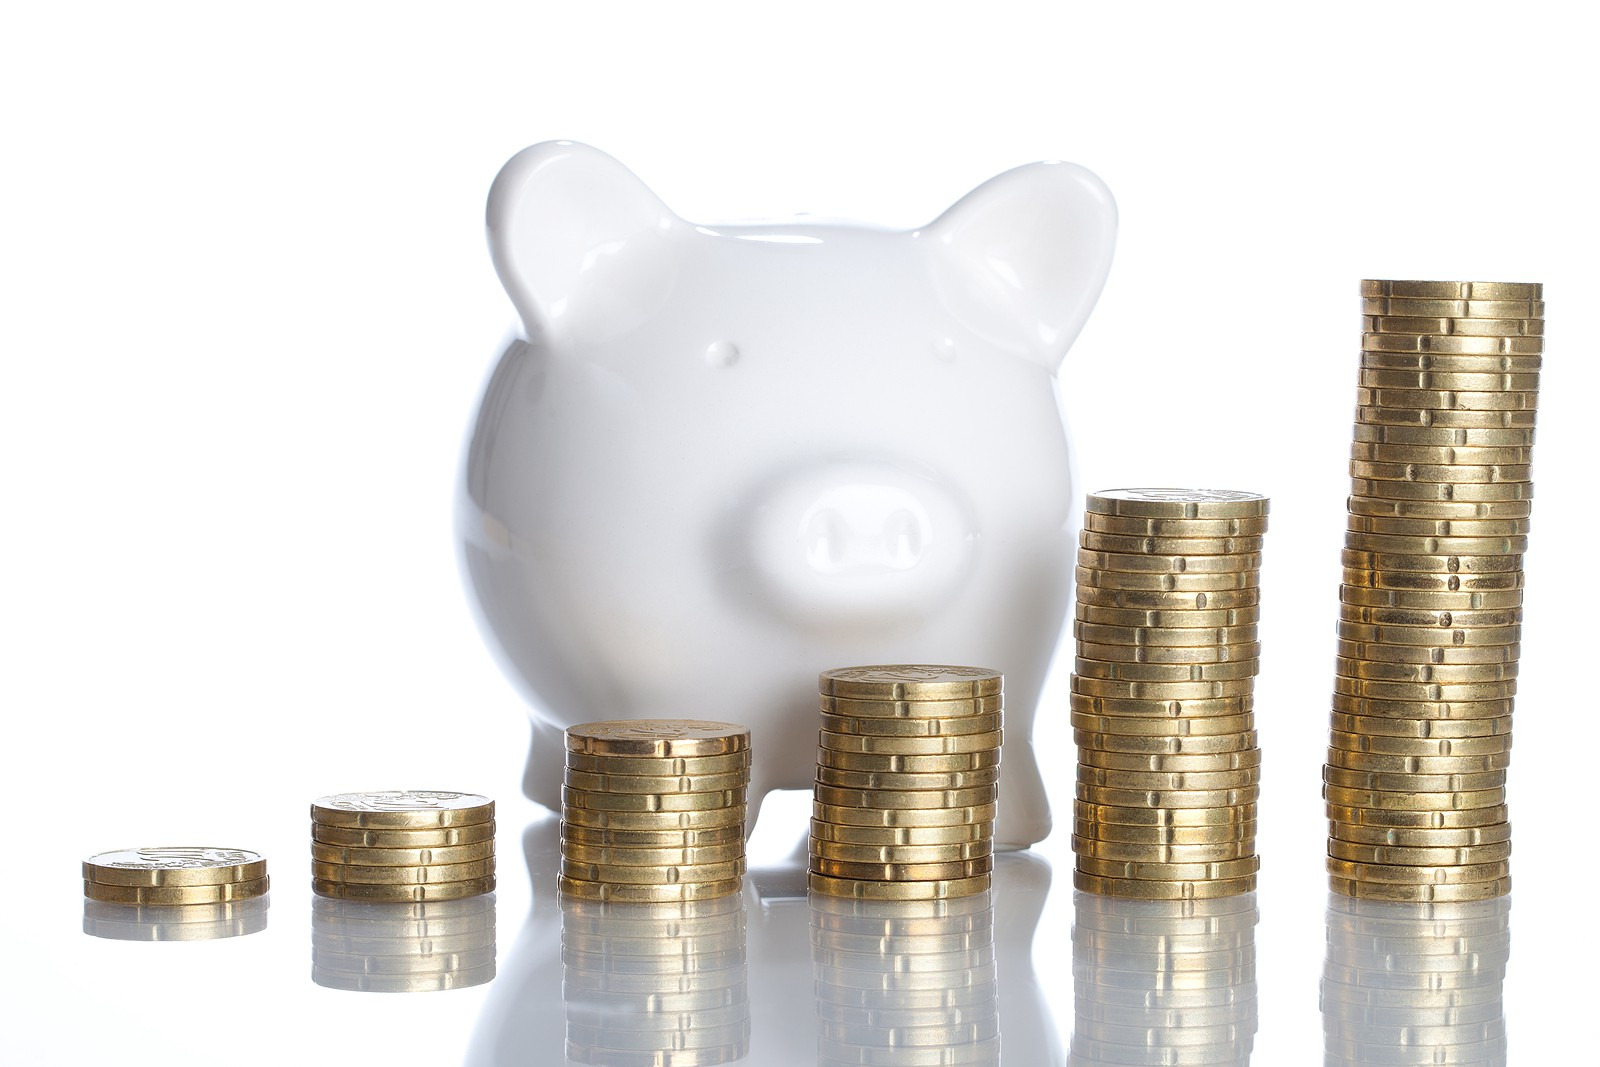 Liquid funds a better replacement of savings account when it comes to investing in mutual funds investors often look for diydo it yourself approaches by roaming and wandering to various websites solutioingenieria Images